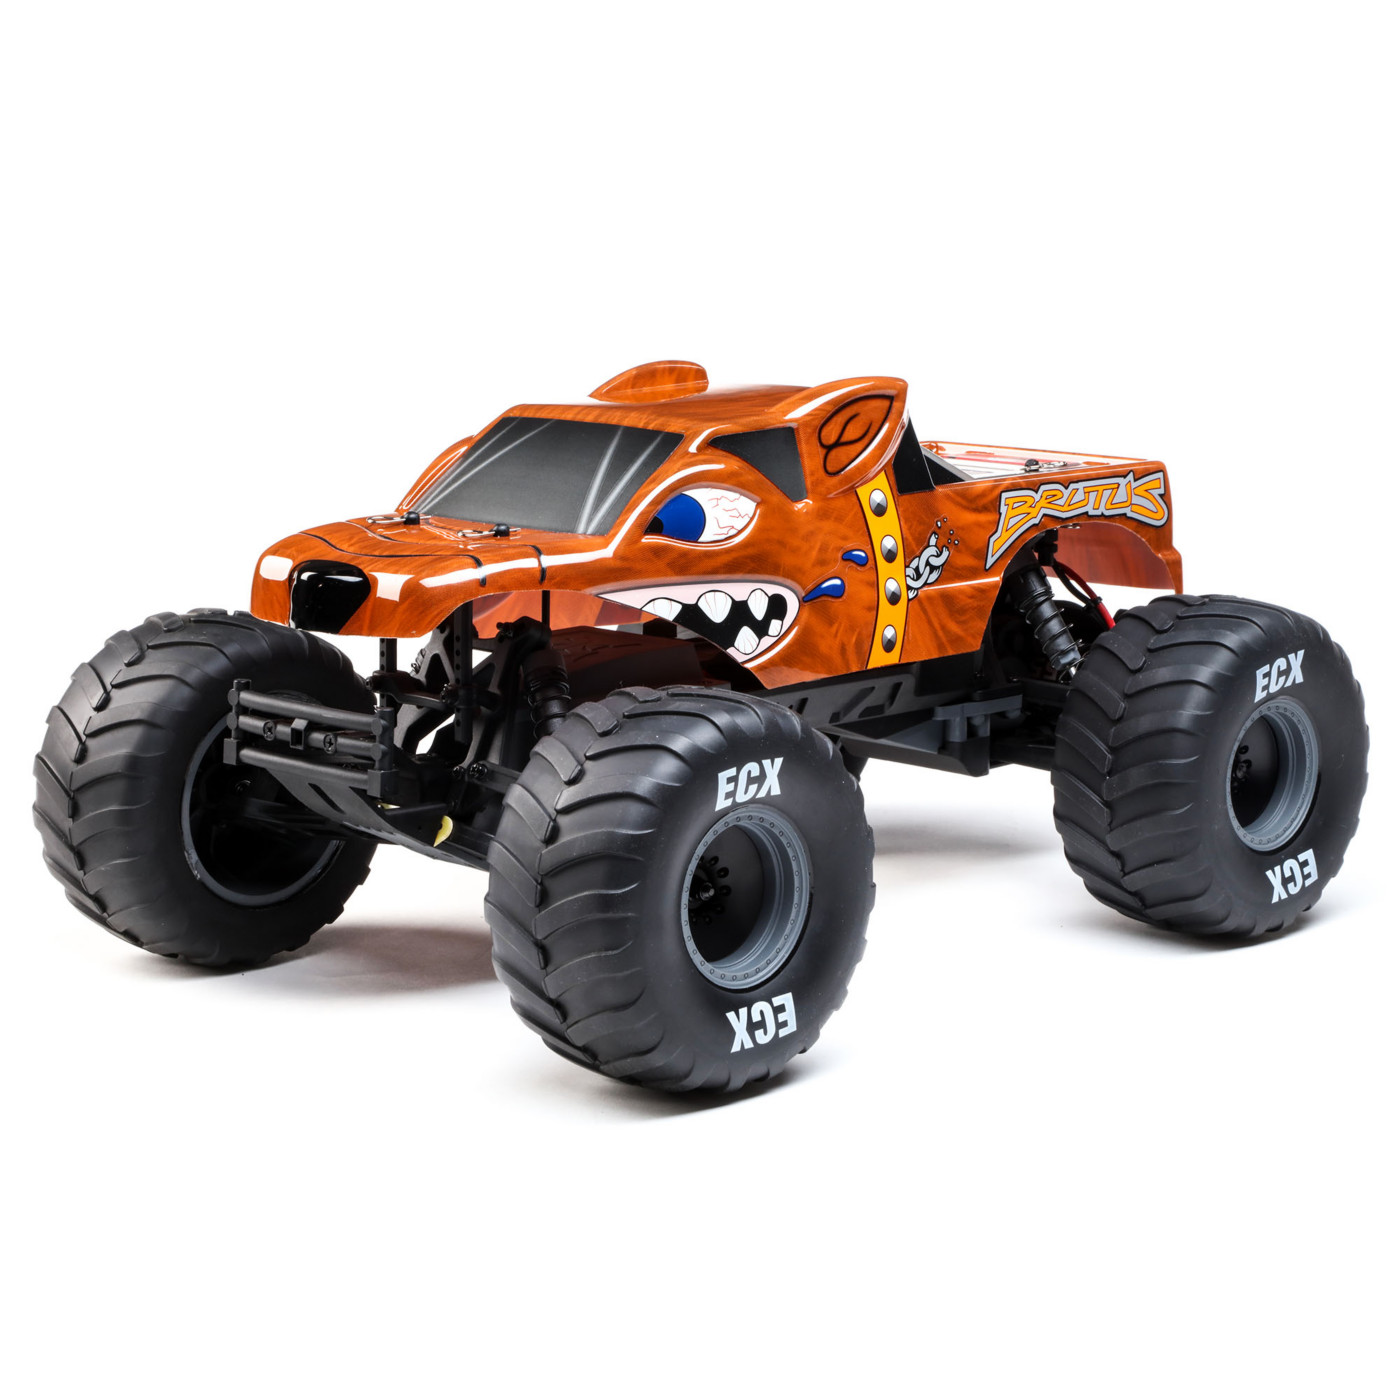 ECX 1/10 Brutus 2WD Monster Truck RTR